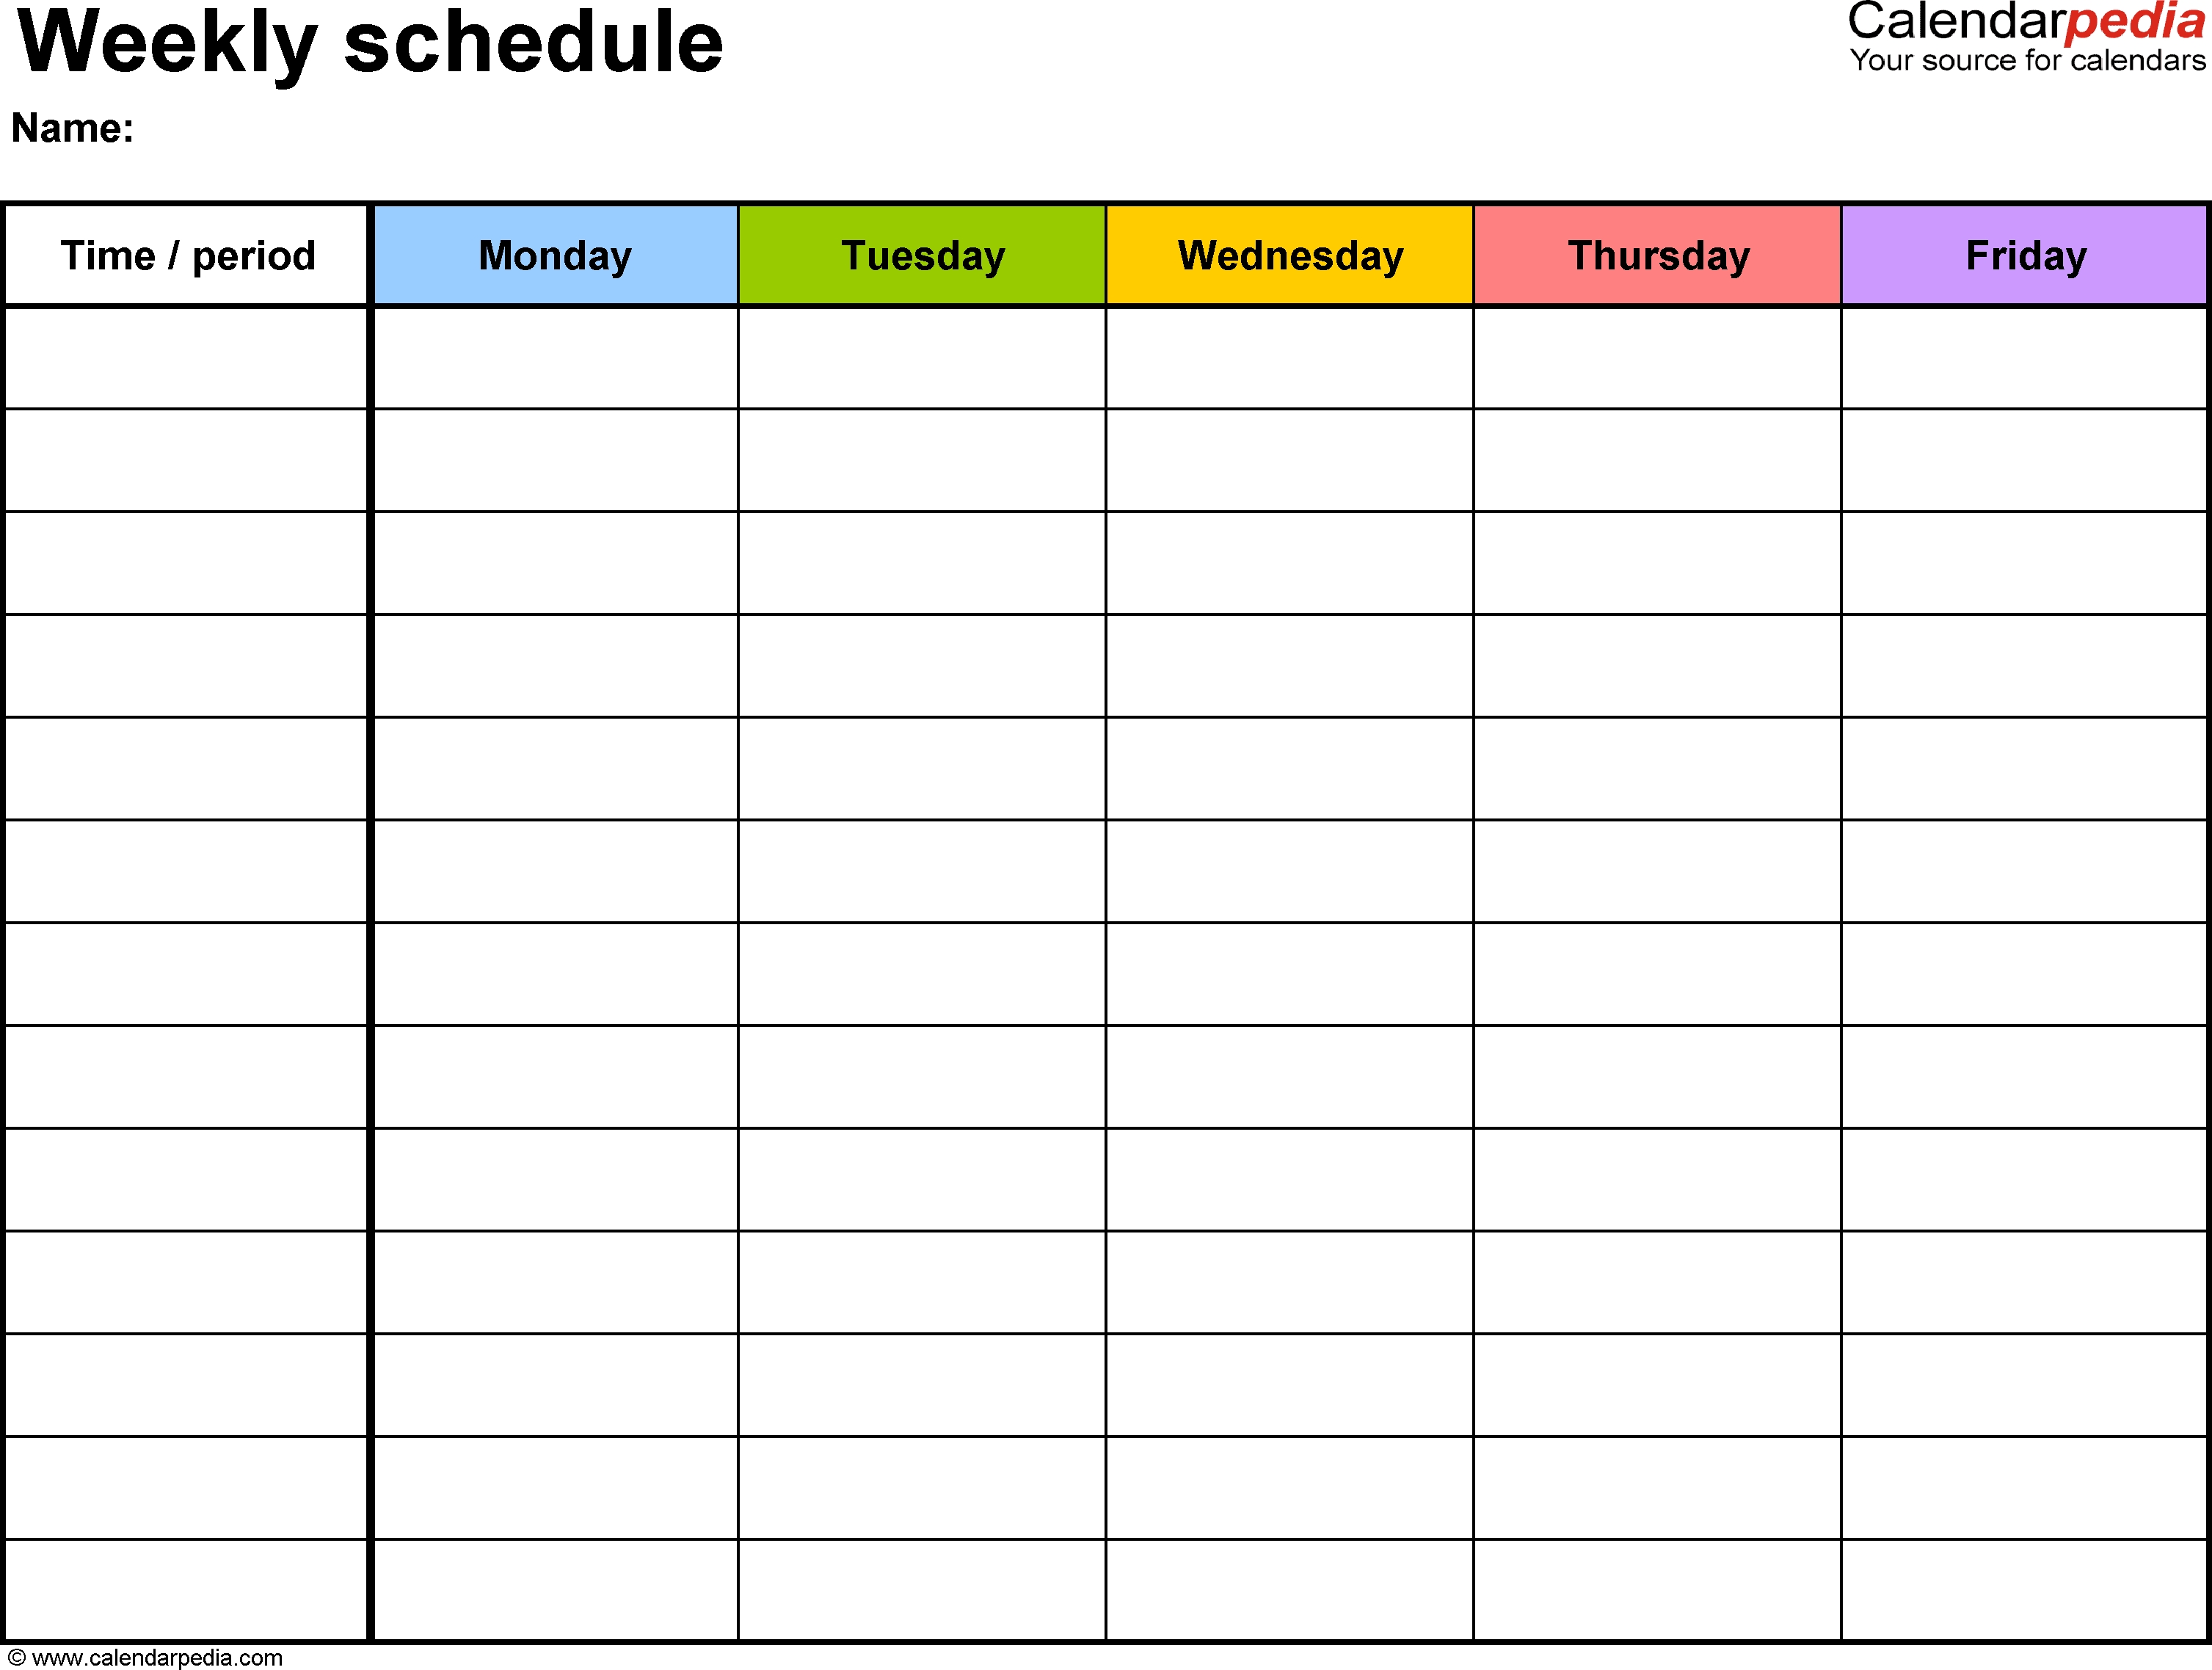 Free Weekly Schedule Templates For Word - 18 Templates with regard to Monday Thru Friday Calendar 2020 Template